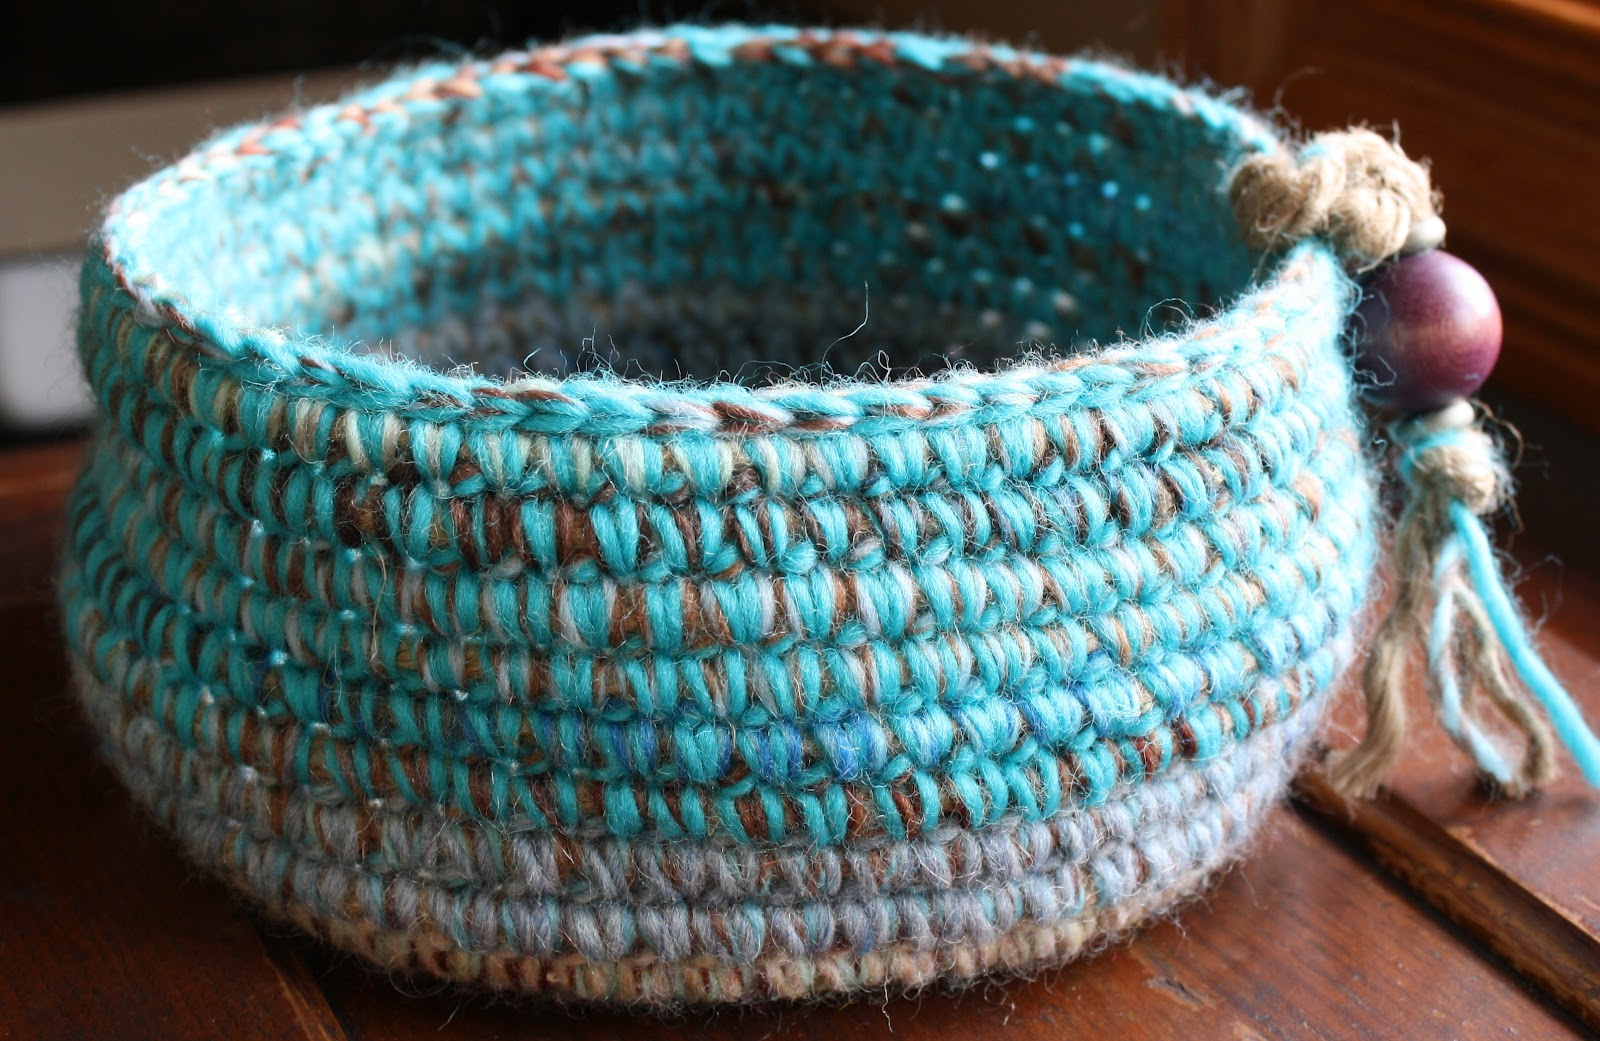 UMELECKY : Crocheted Baskets and A Wall Hanging